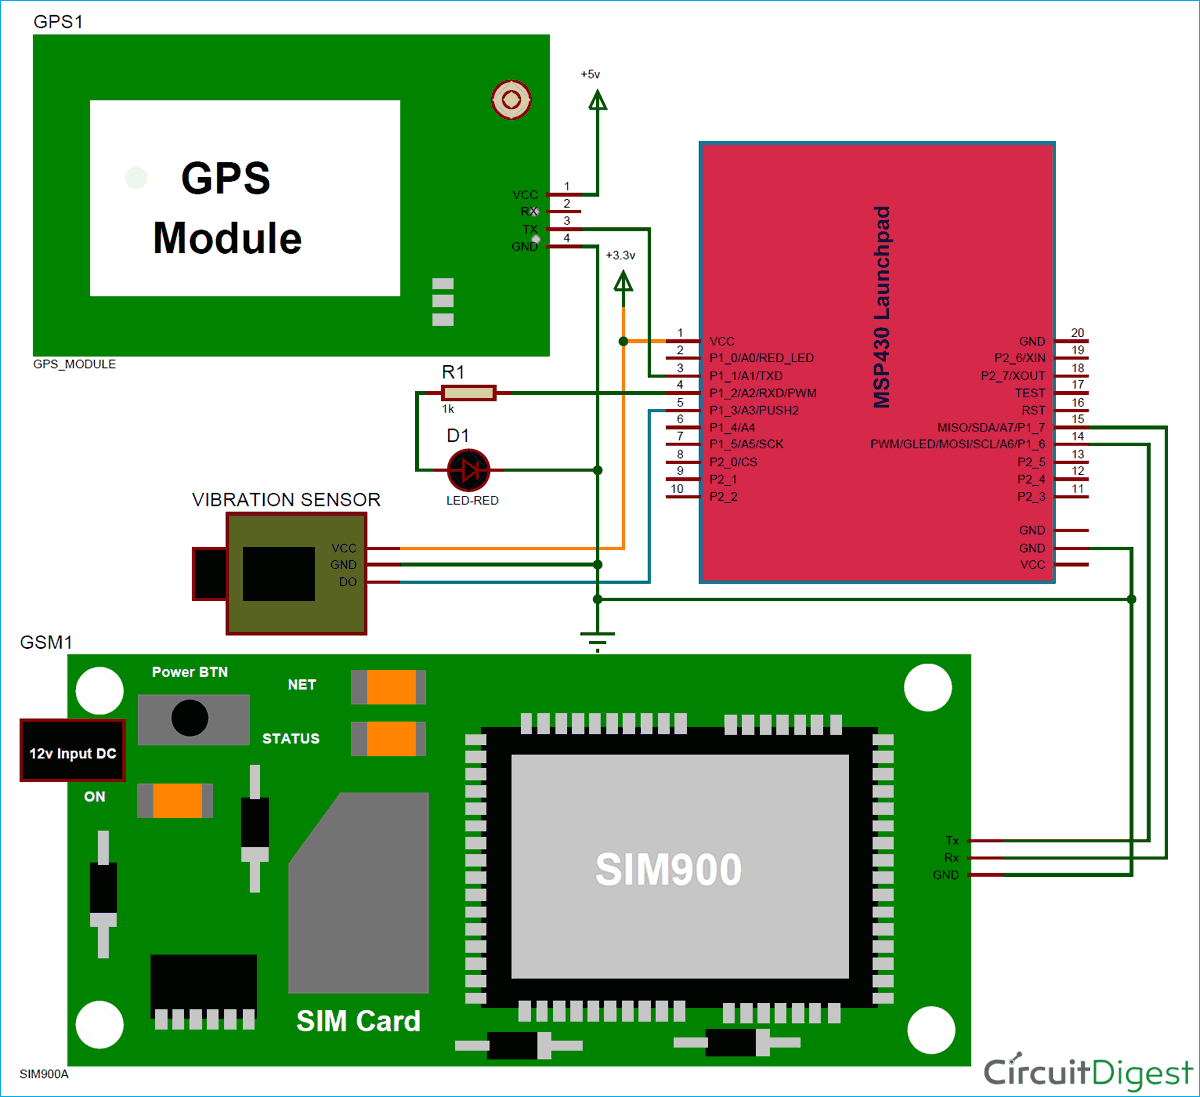 medium resolution of circuit diagram for vehicle tracking and accident alert system using msp430and gps